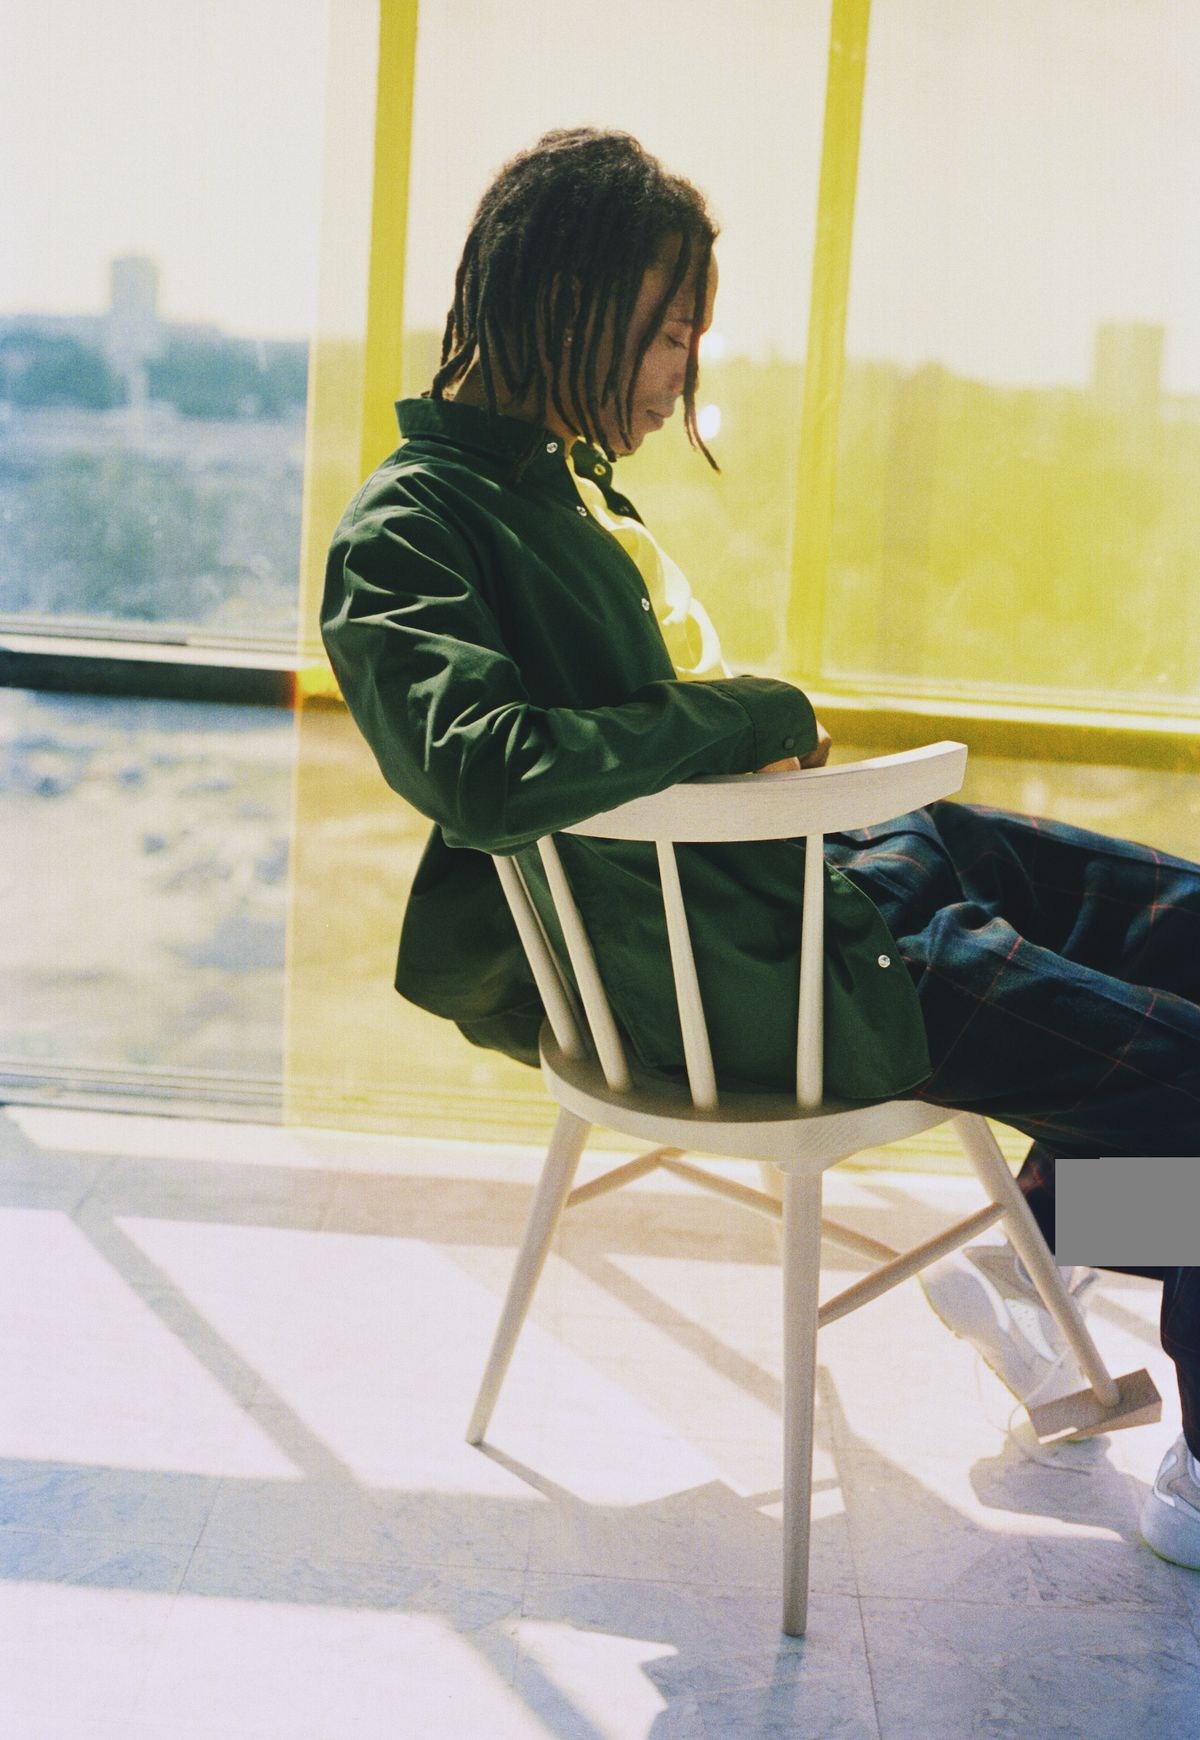 A man sits in a wooden chair with a doorstop forming one of the chair legs.